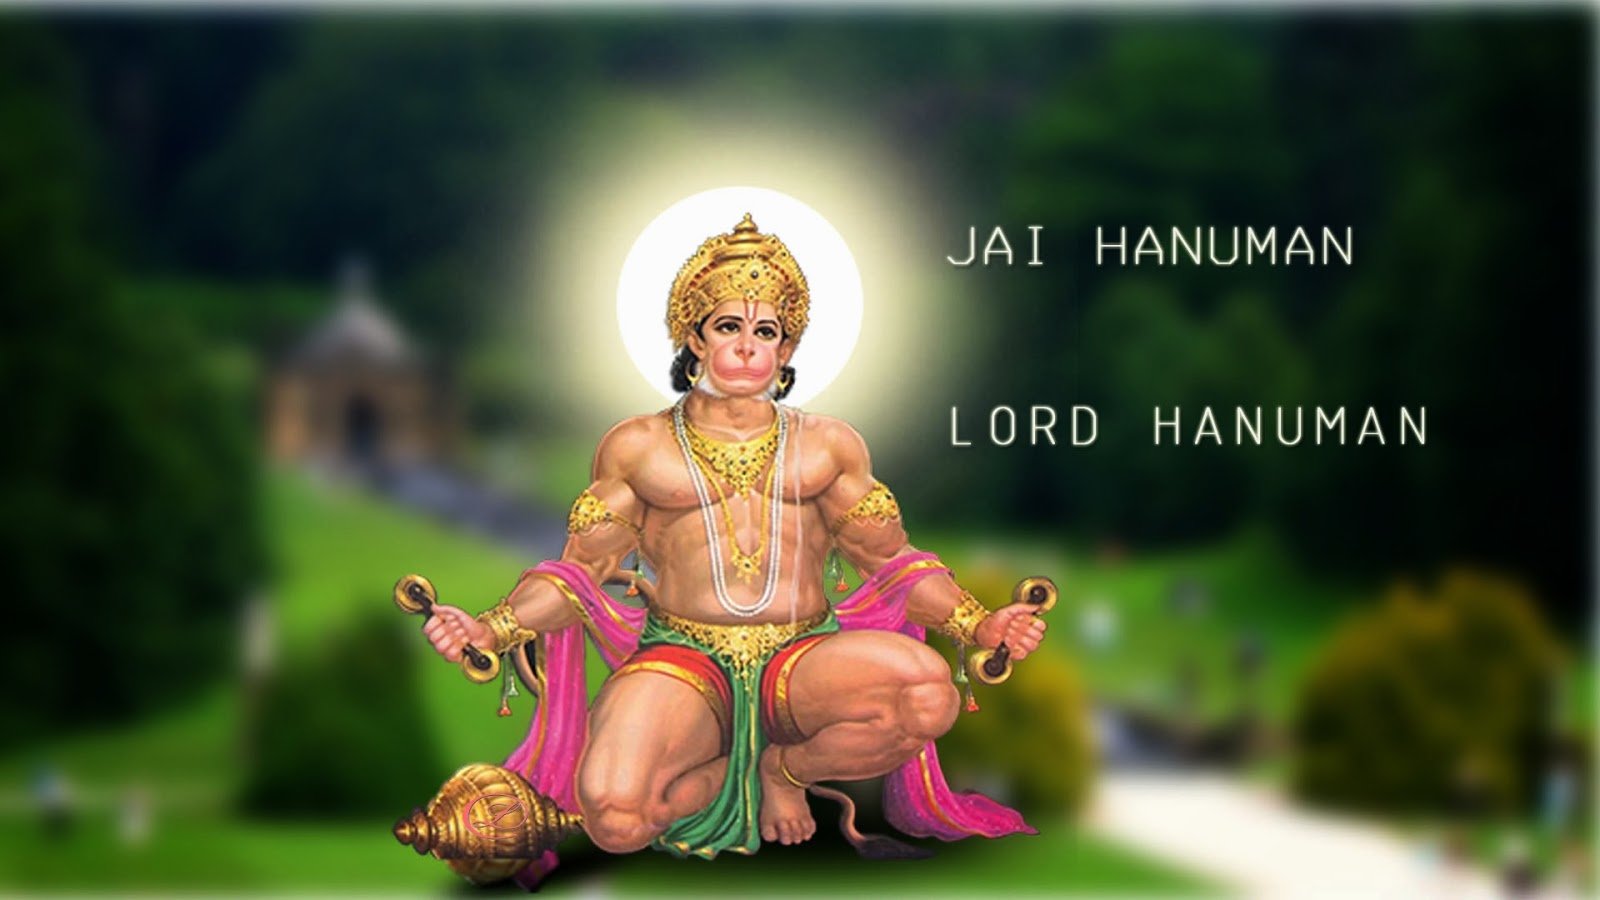 Hd wallpaper hanuman - Hd Wallpaper Hanuman 43